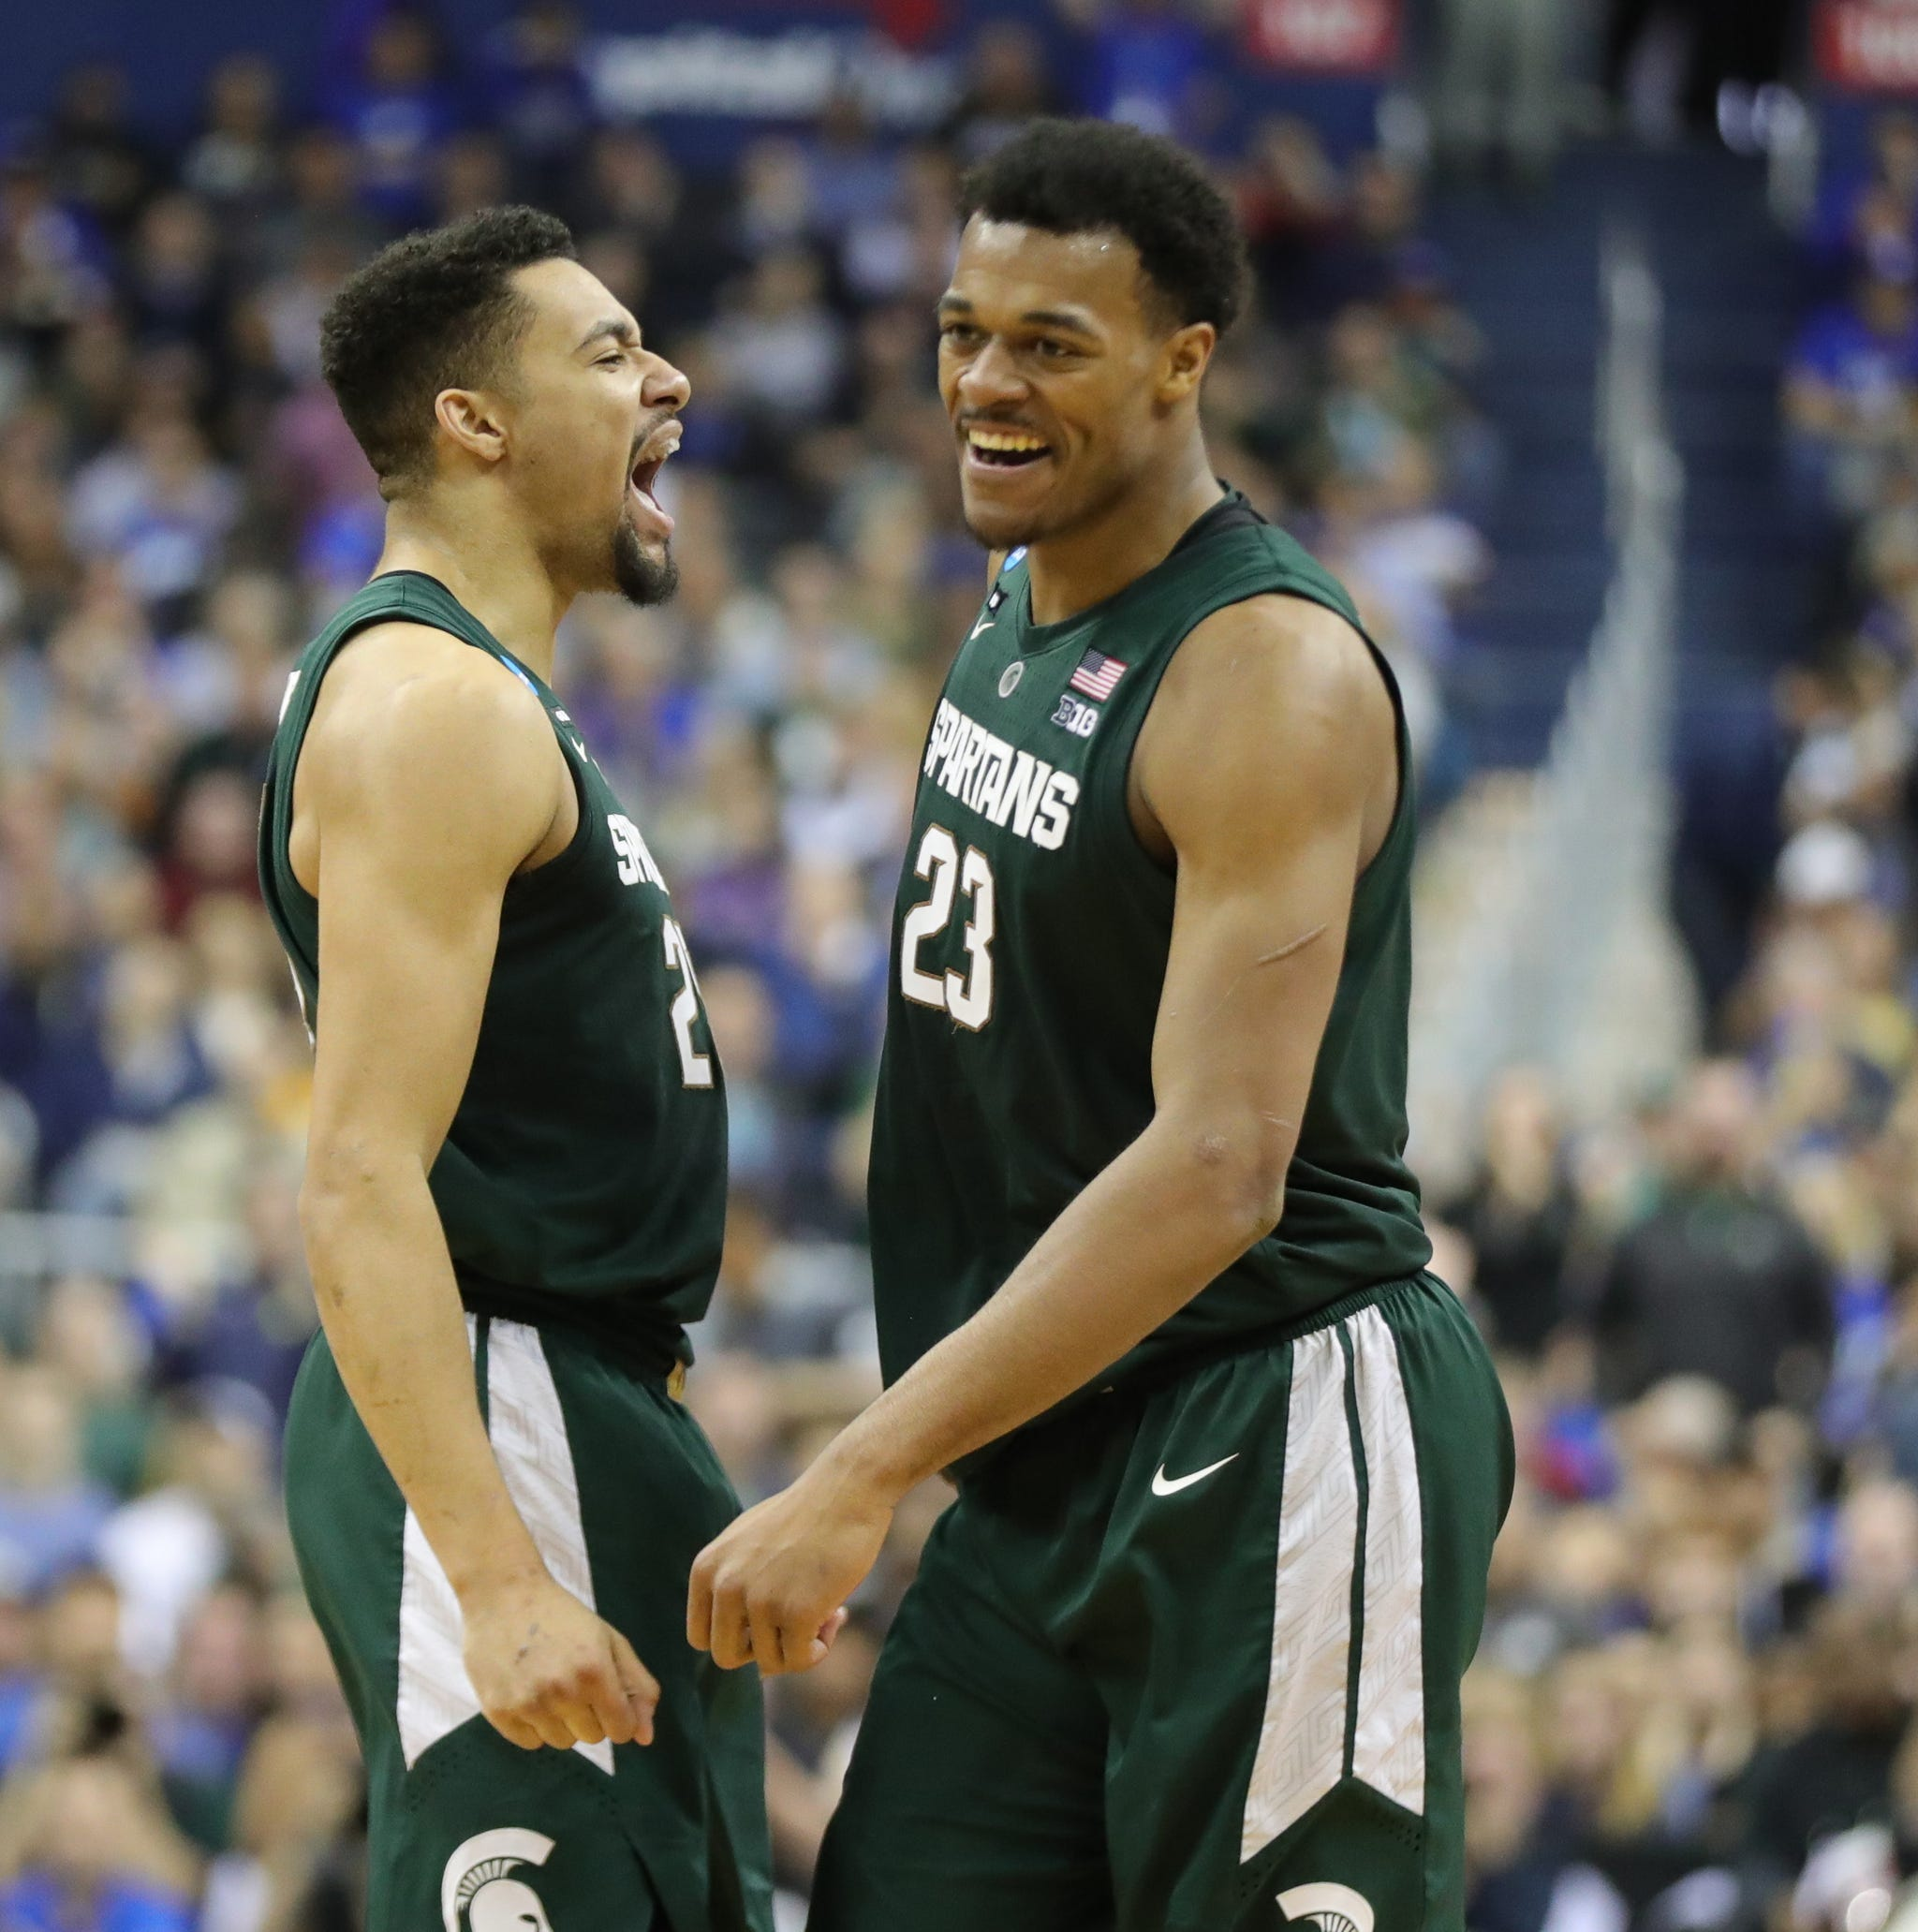 One glance reveals Michigan State basketball's extraordinary connection